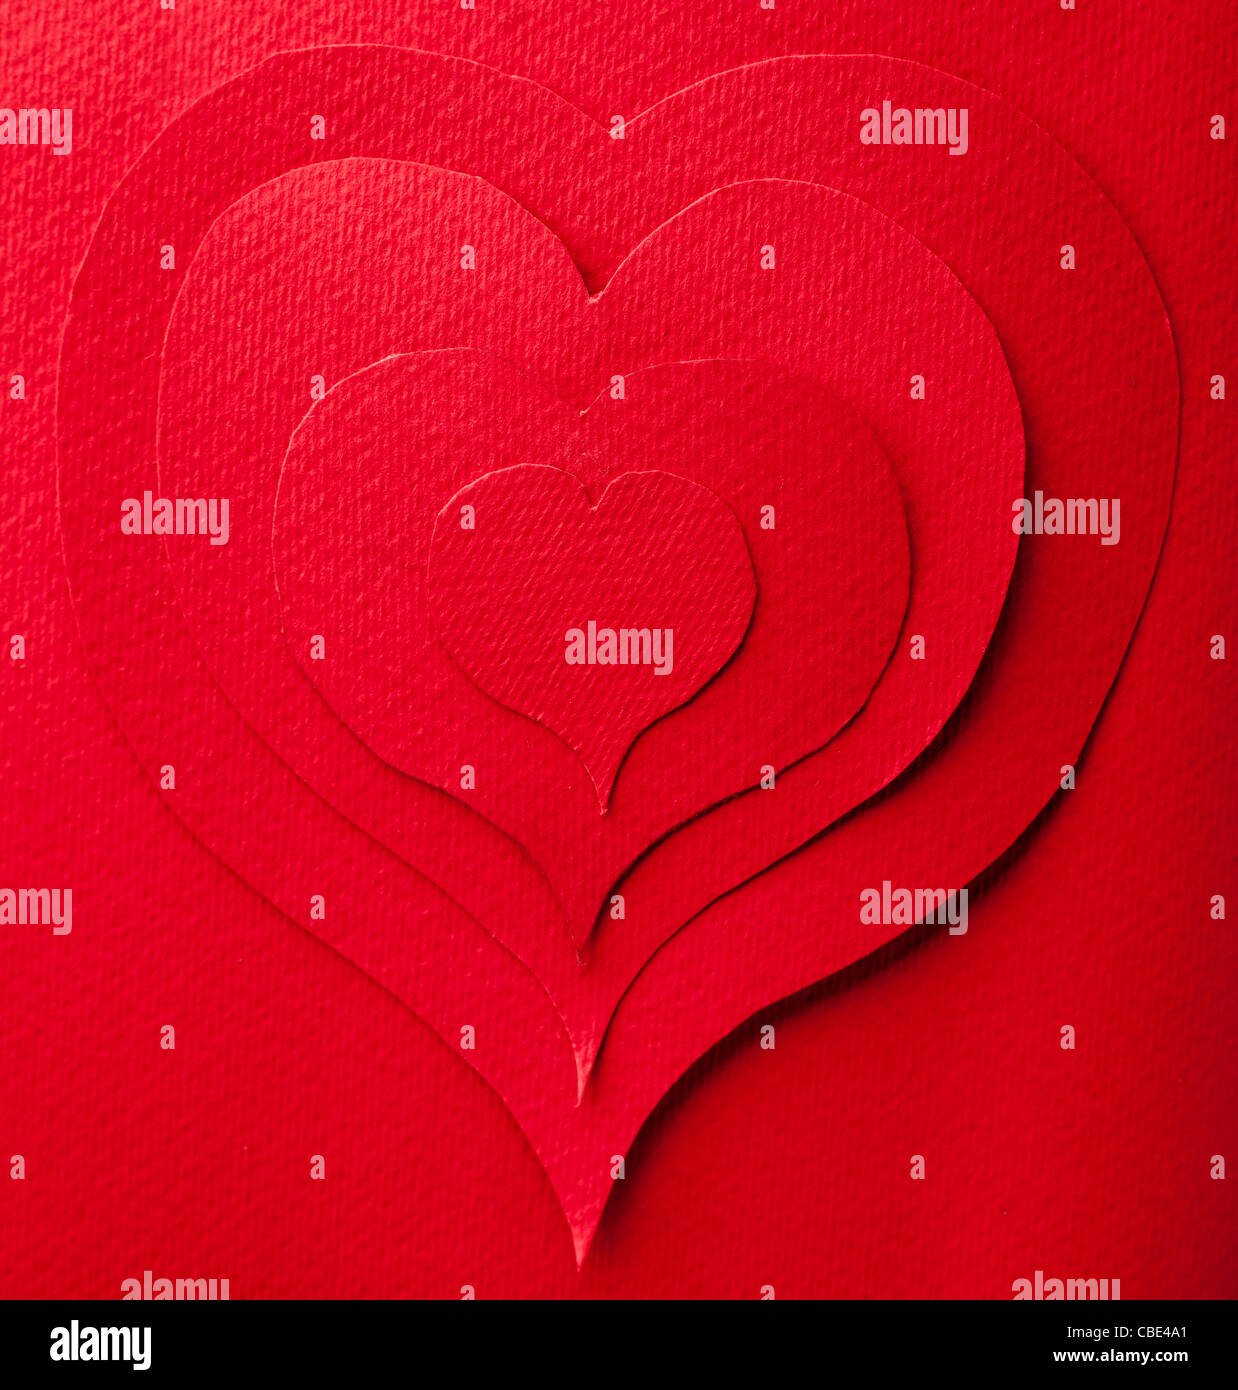 Concentric Red Paper Hearts Close Up - Stock Image